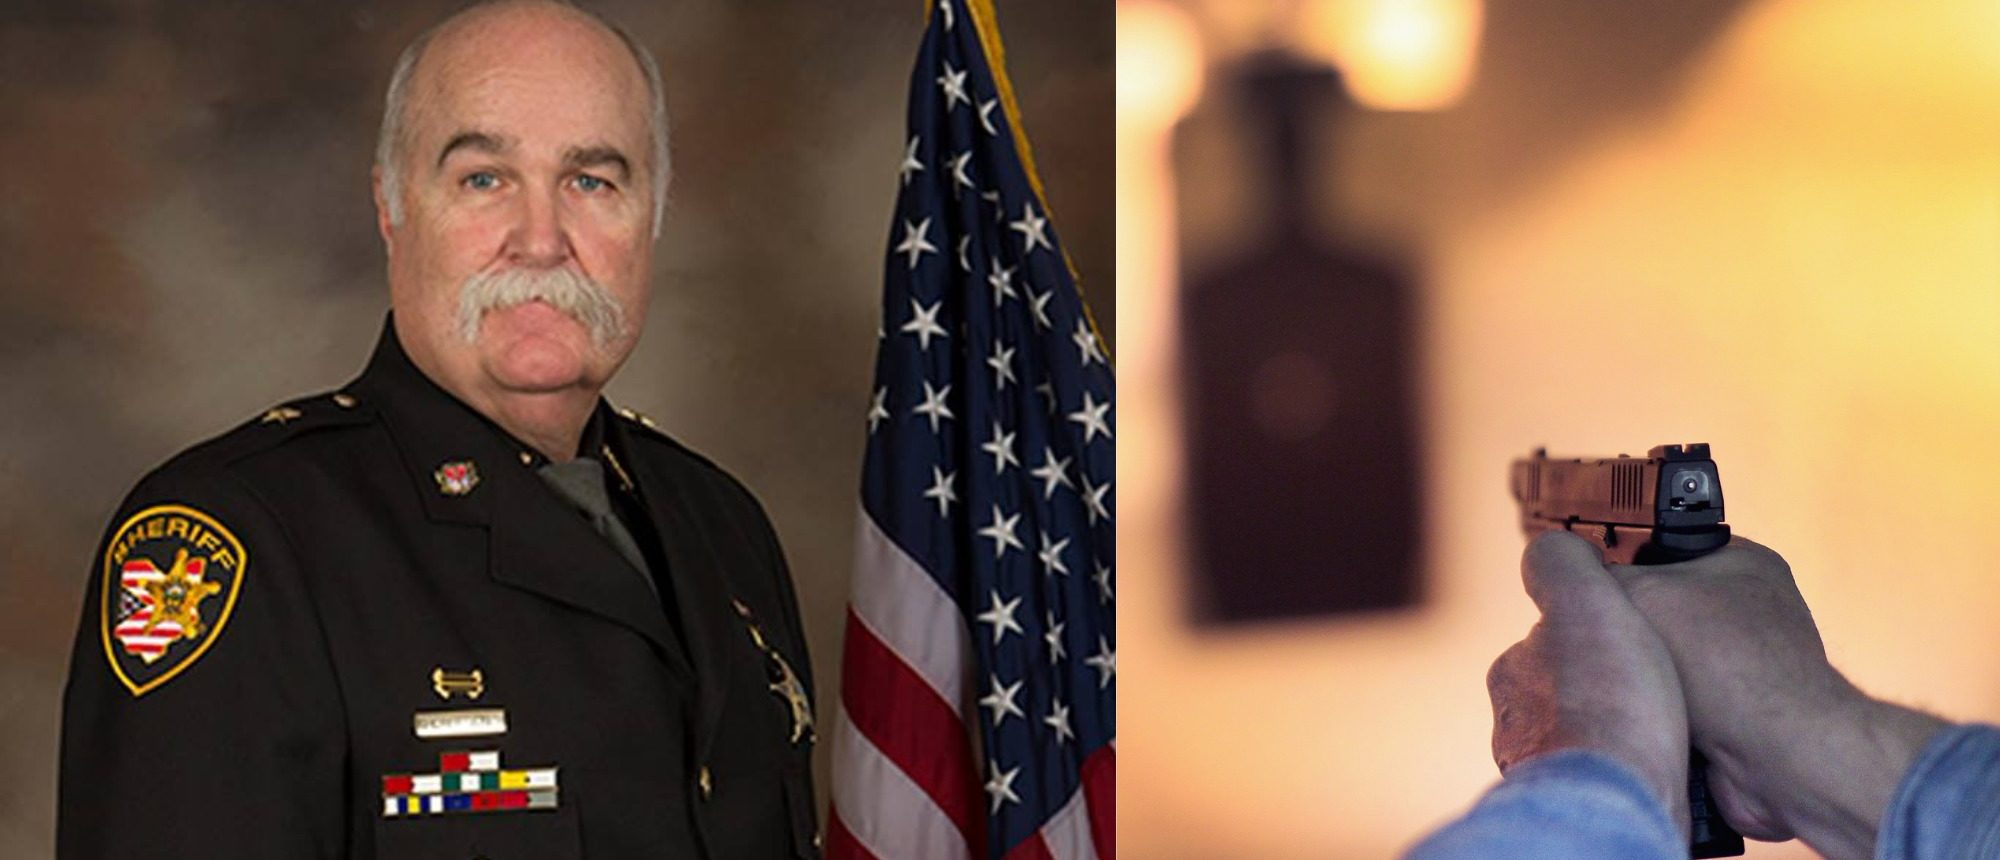 Facebook/Butler County Sheriff/Scott Olson/Getty Images